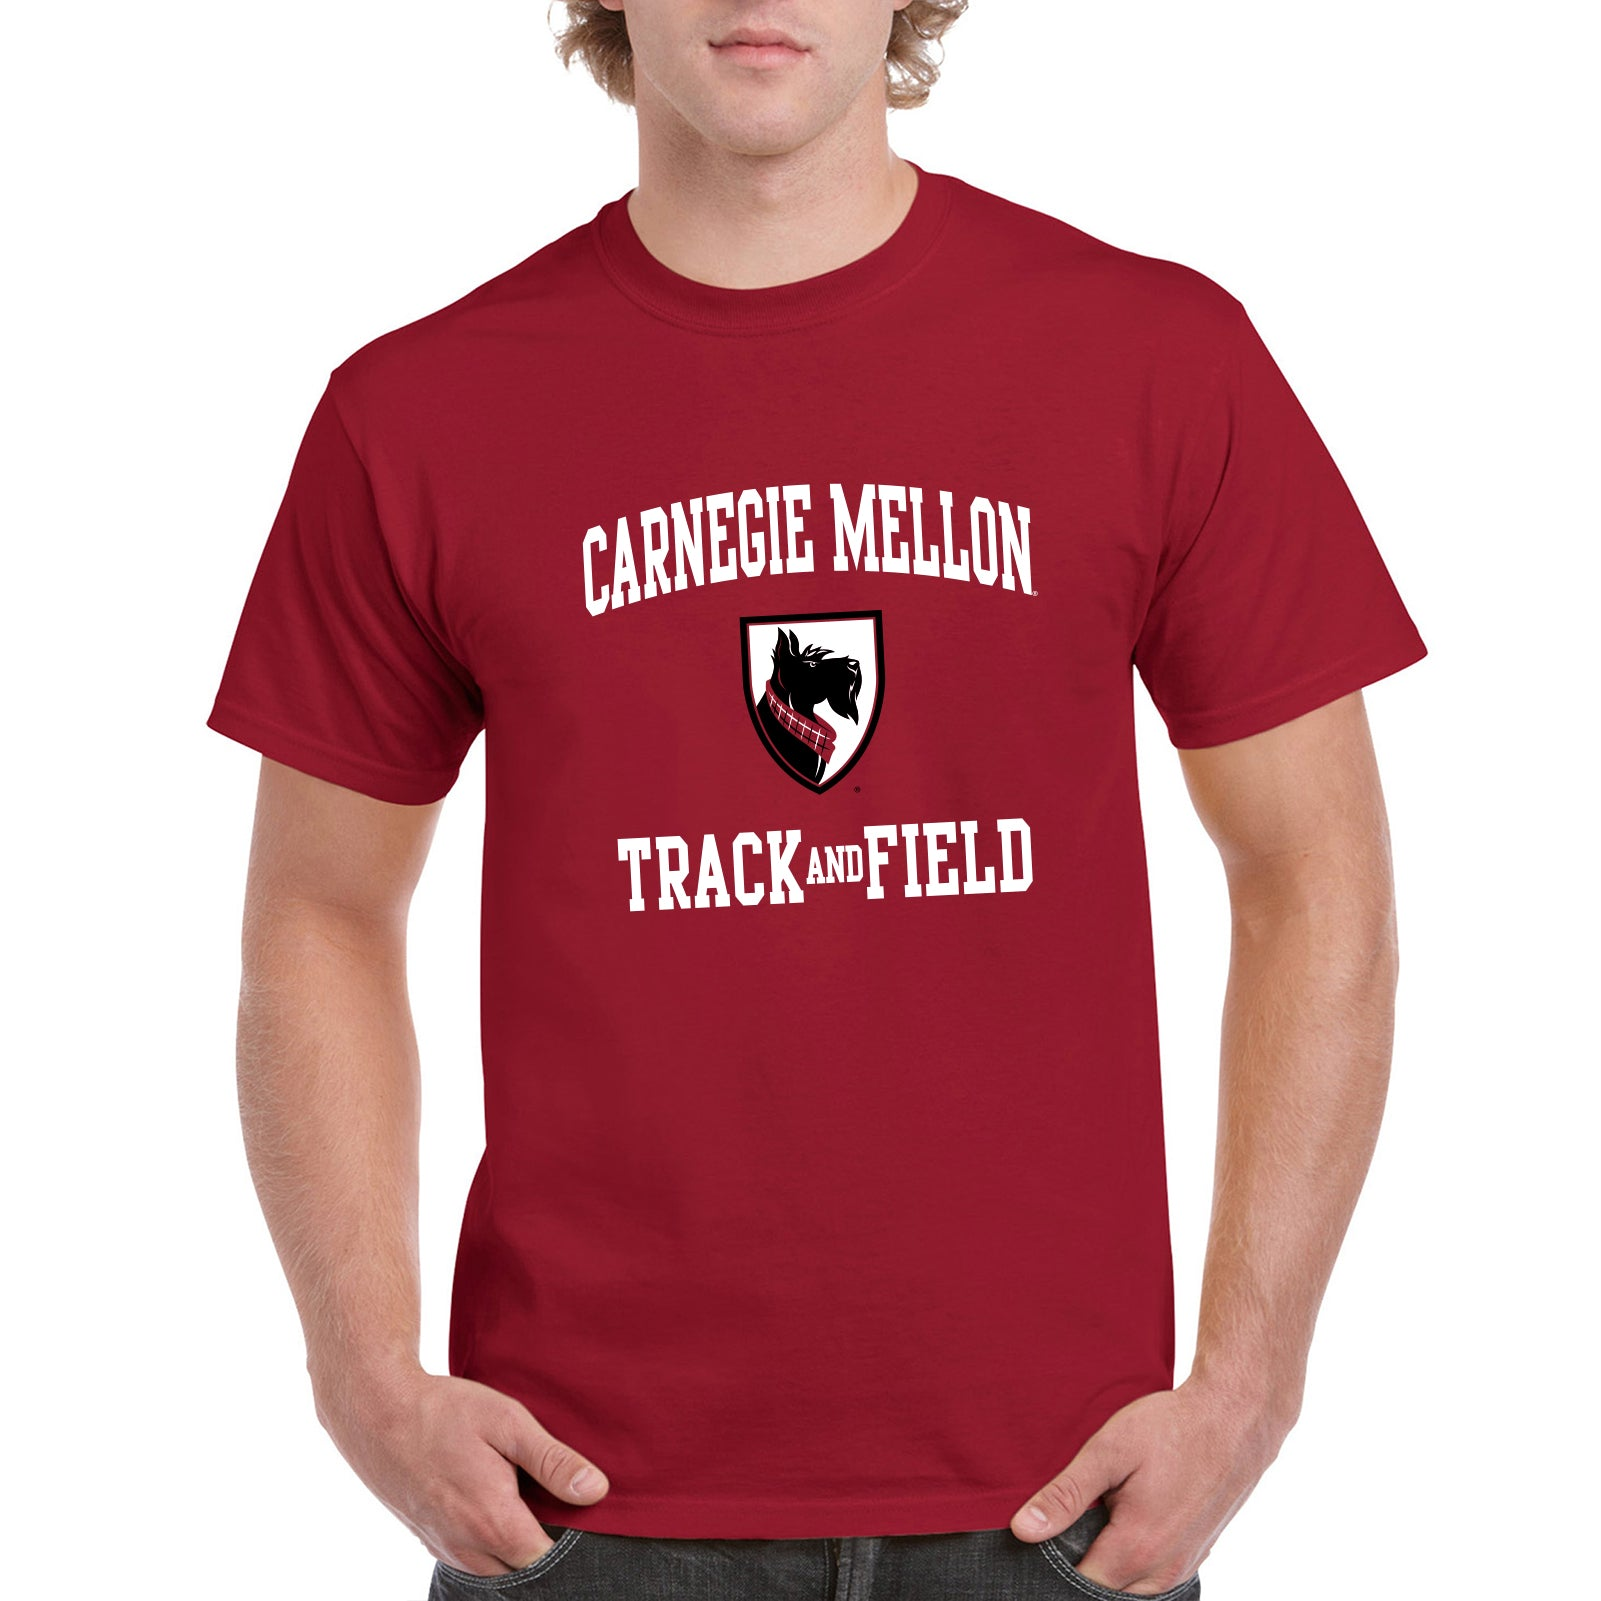 finest selection aebe0 d45d8 Carnegie Mellon University Tartans Arch Logo Track & Field Short Sleeve T  Shirt - Cardinal